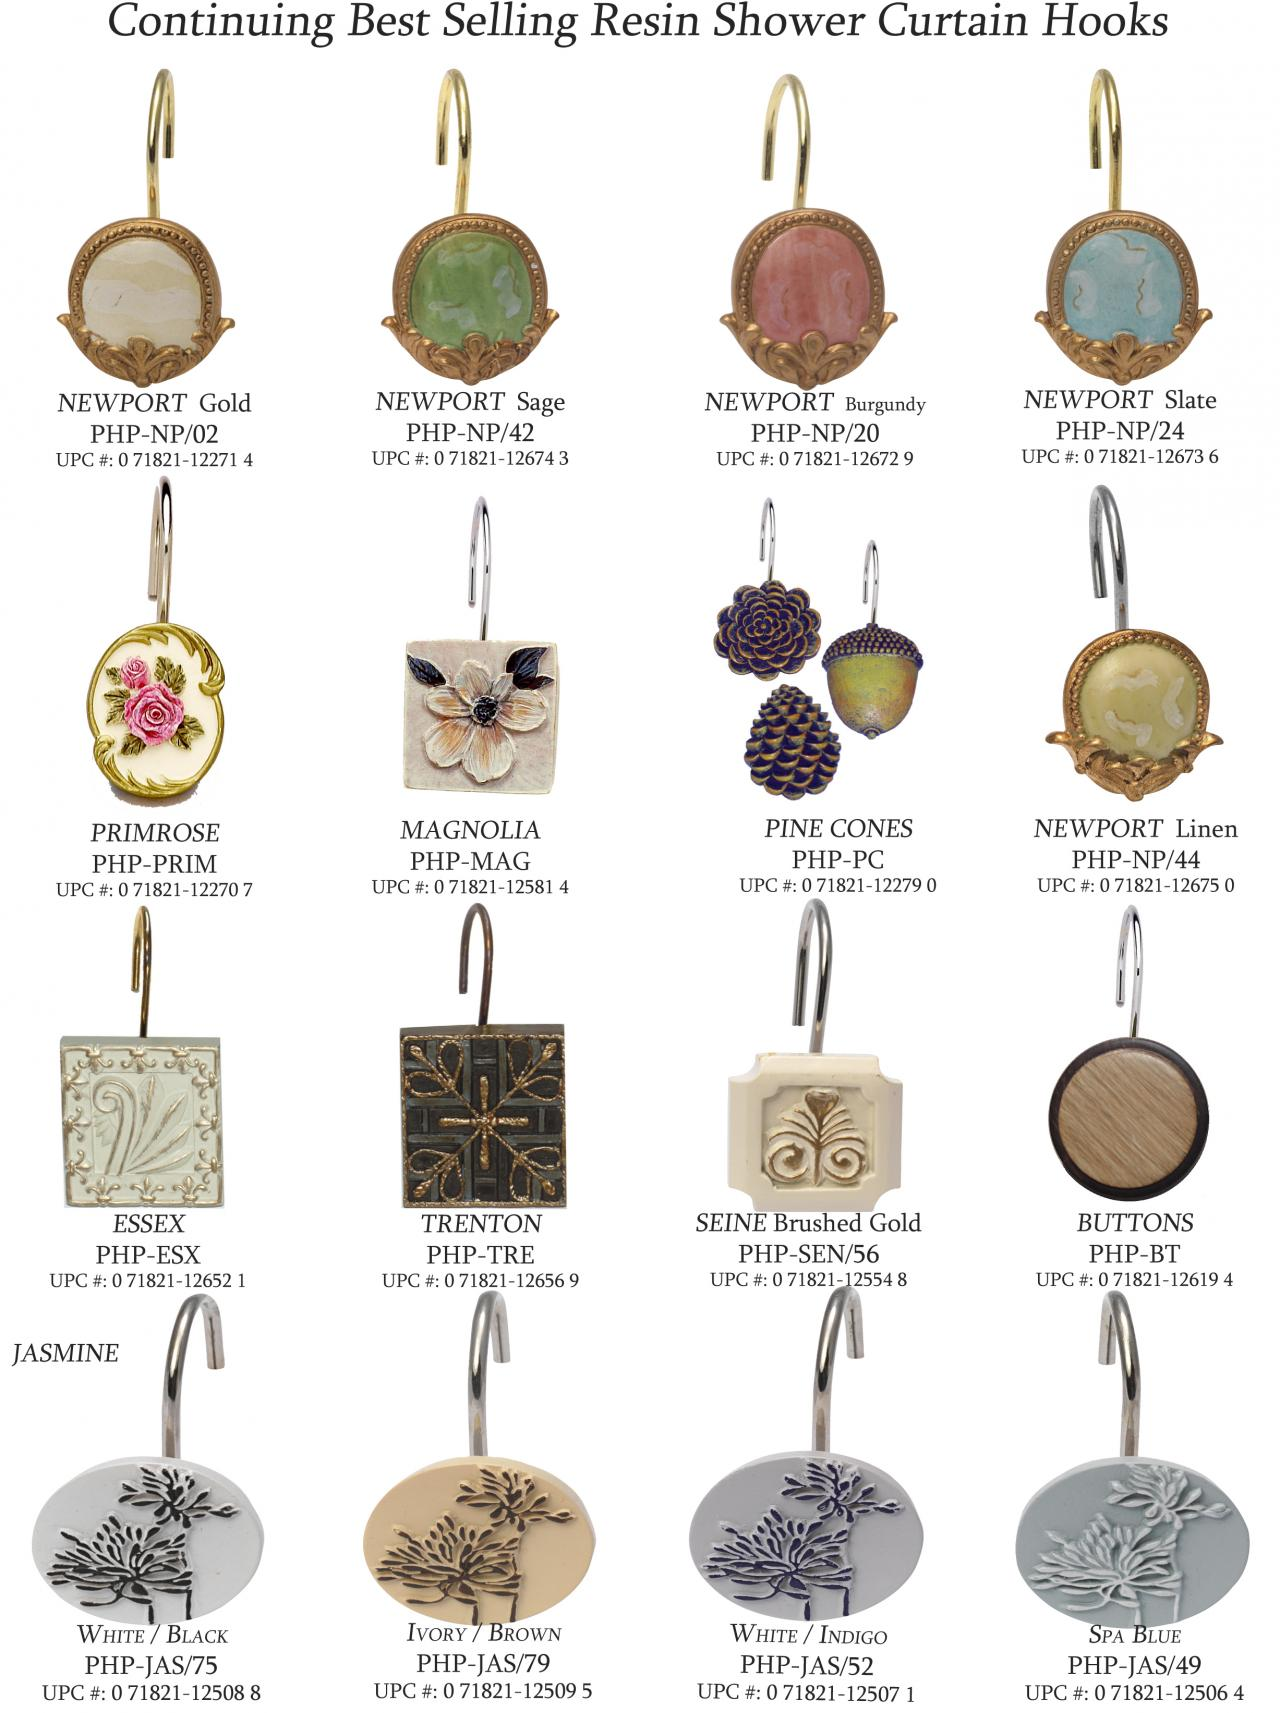 Carnation home fashions inc shower curtain hooks